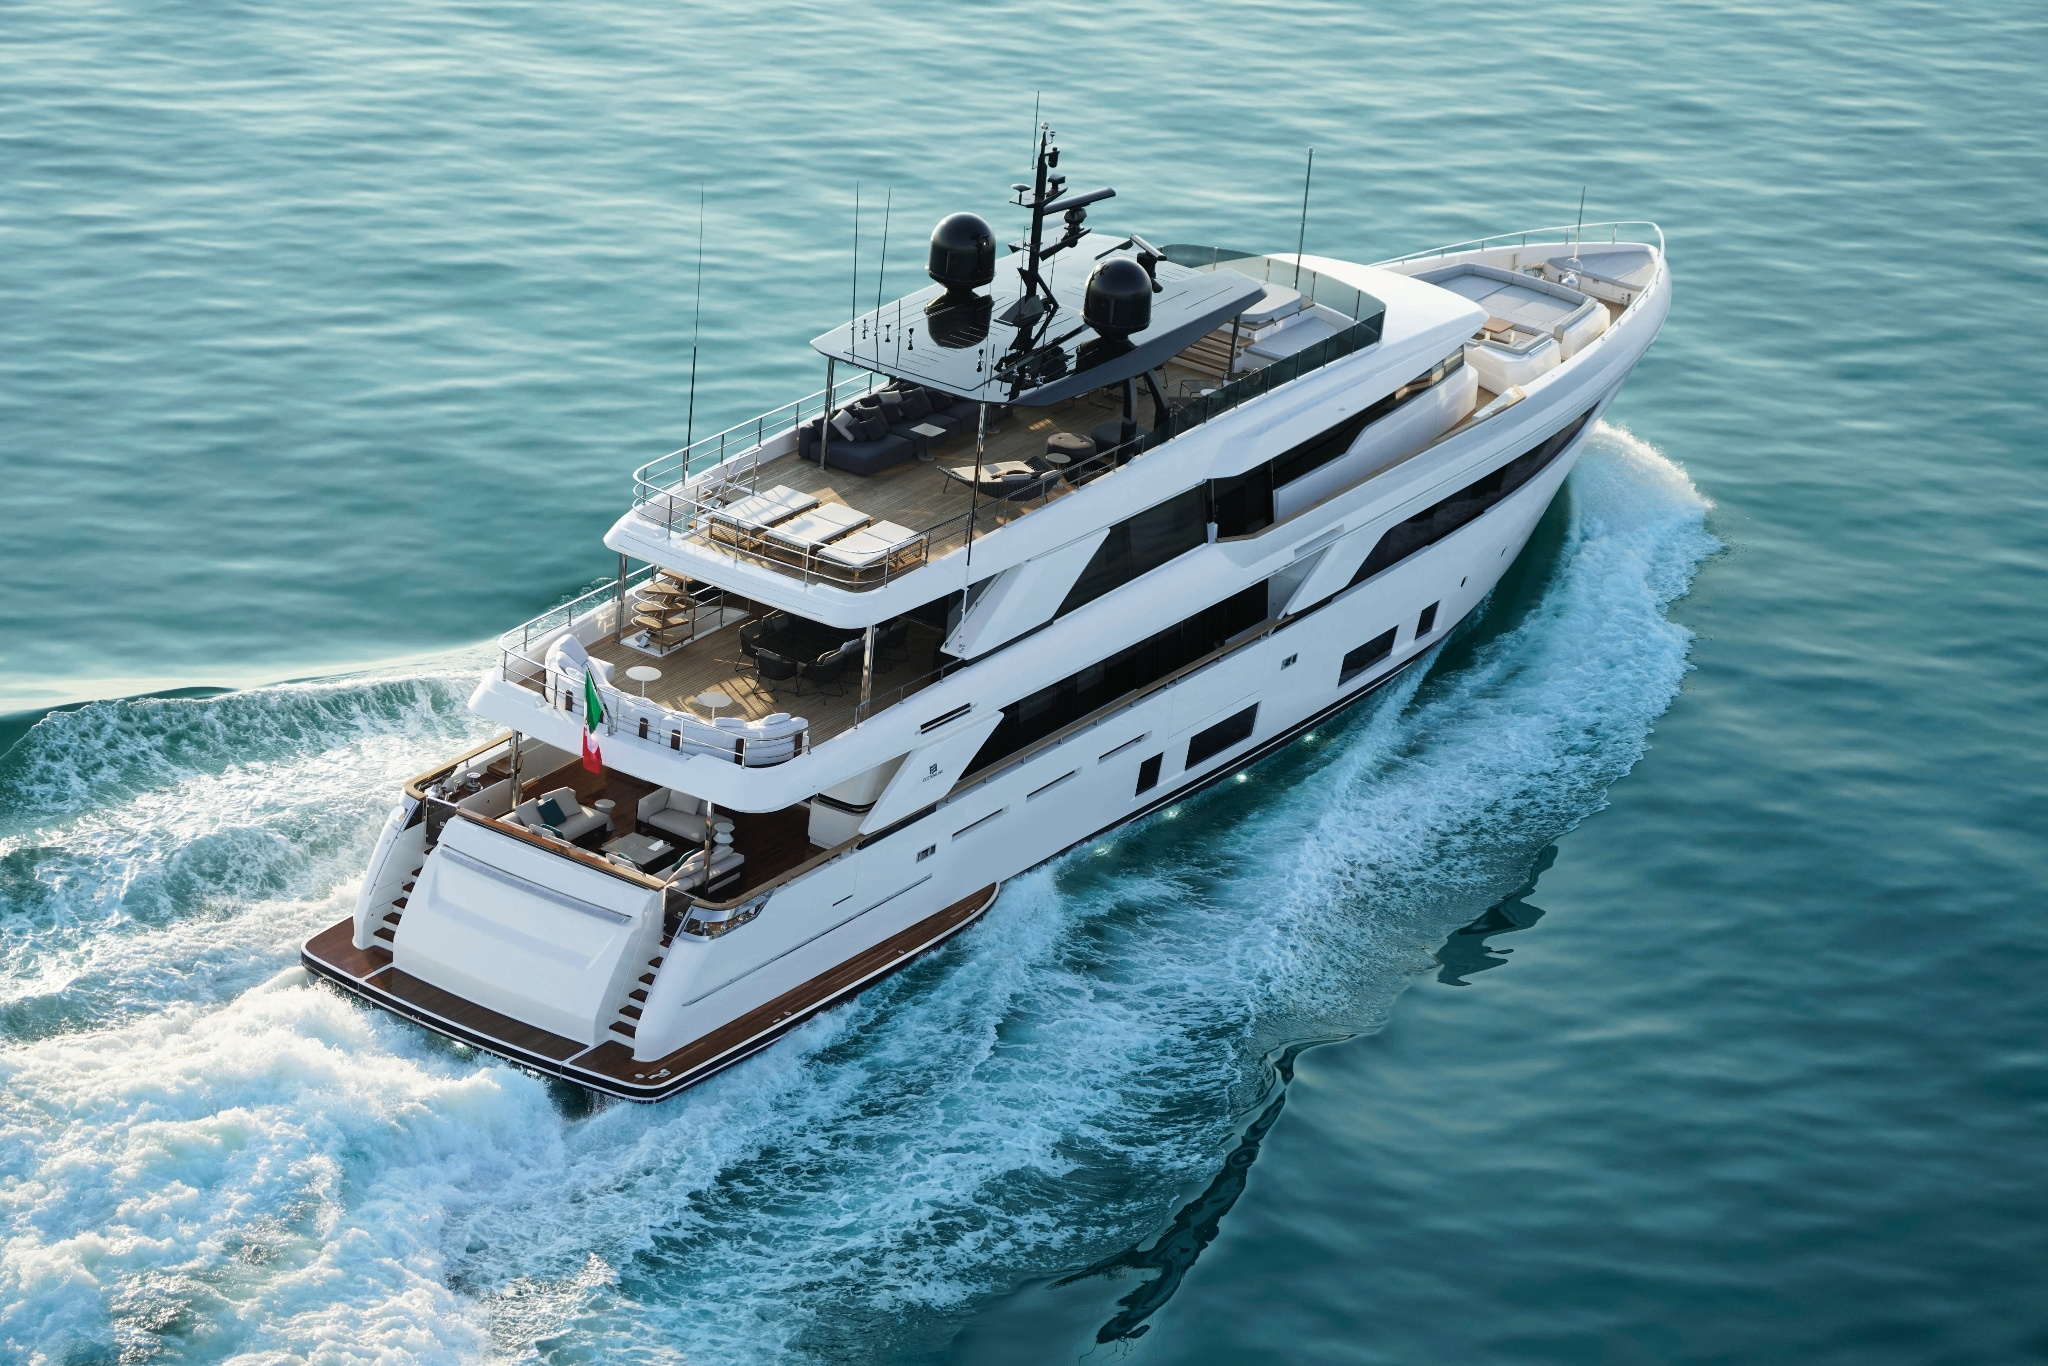 Sunseeker yacht for sale in united kingdom for £